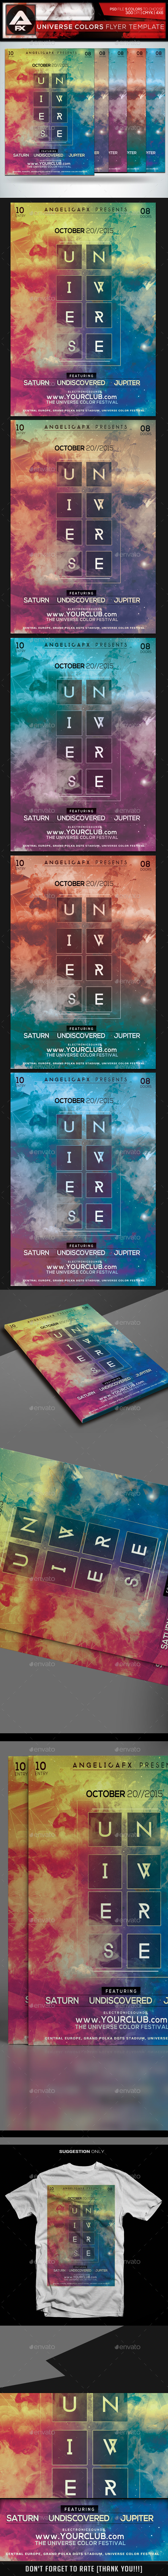 Universe Colors Flyer Template - Flyers Print Templates